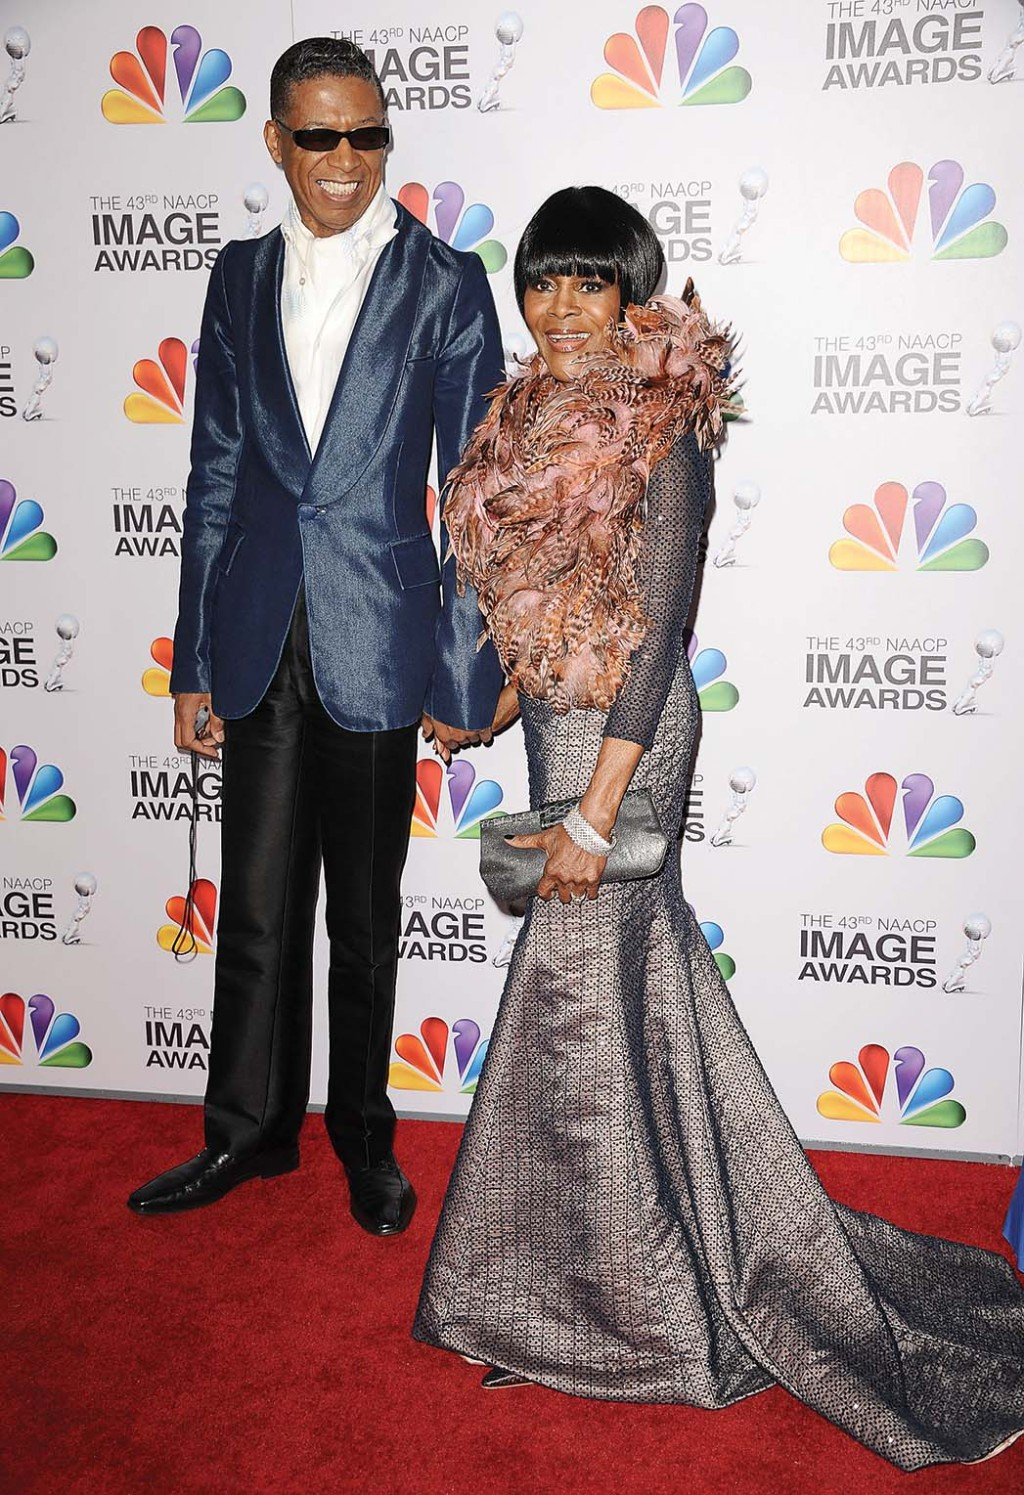 The actress, with the designer, wearing his mermaid strapless gown and bolero with feather collar at the 2012 NAACP Image Awards.